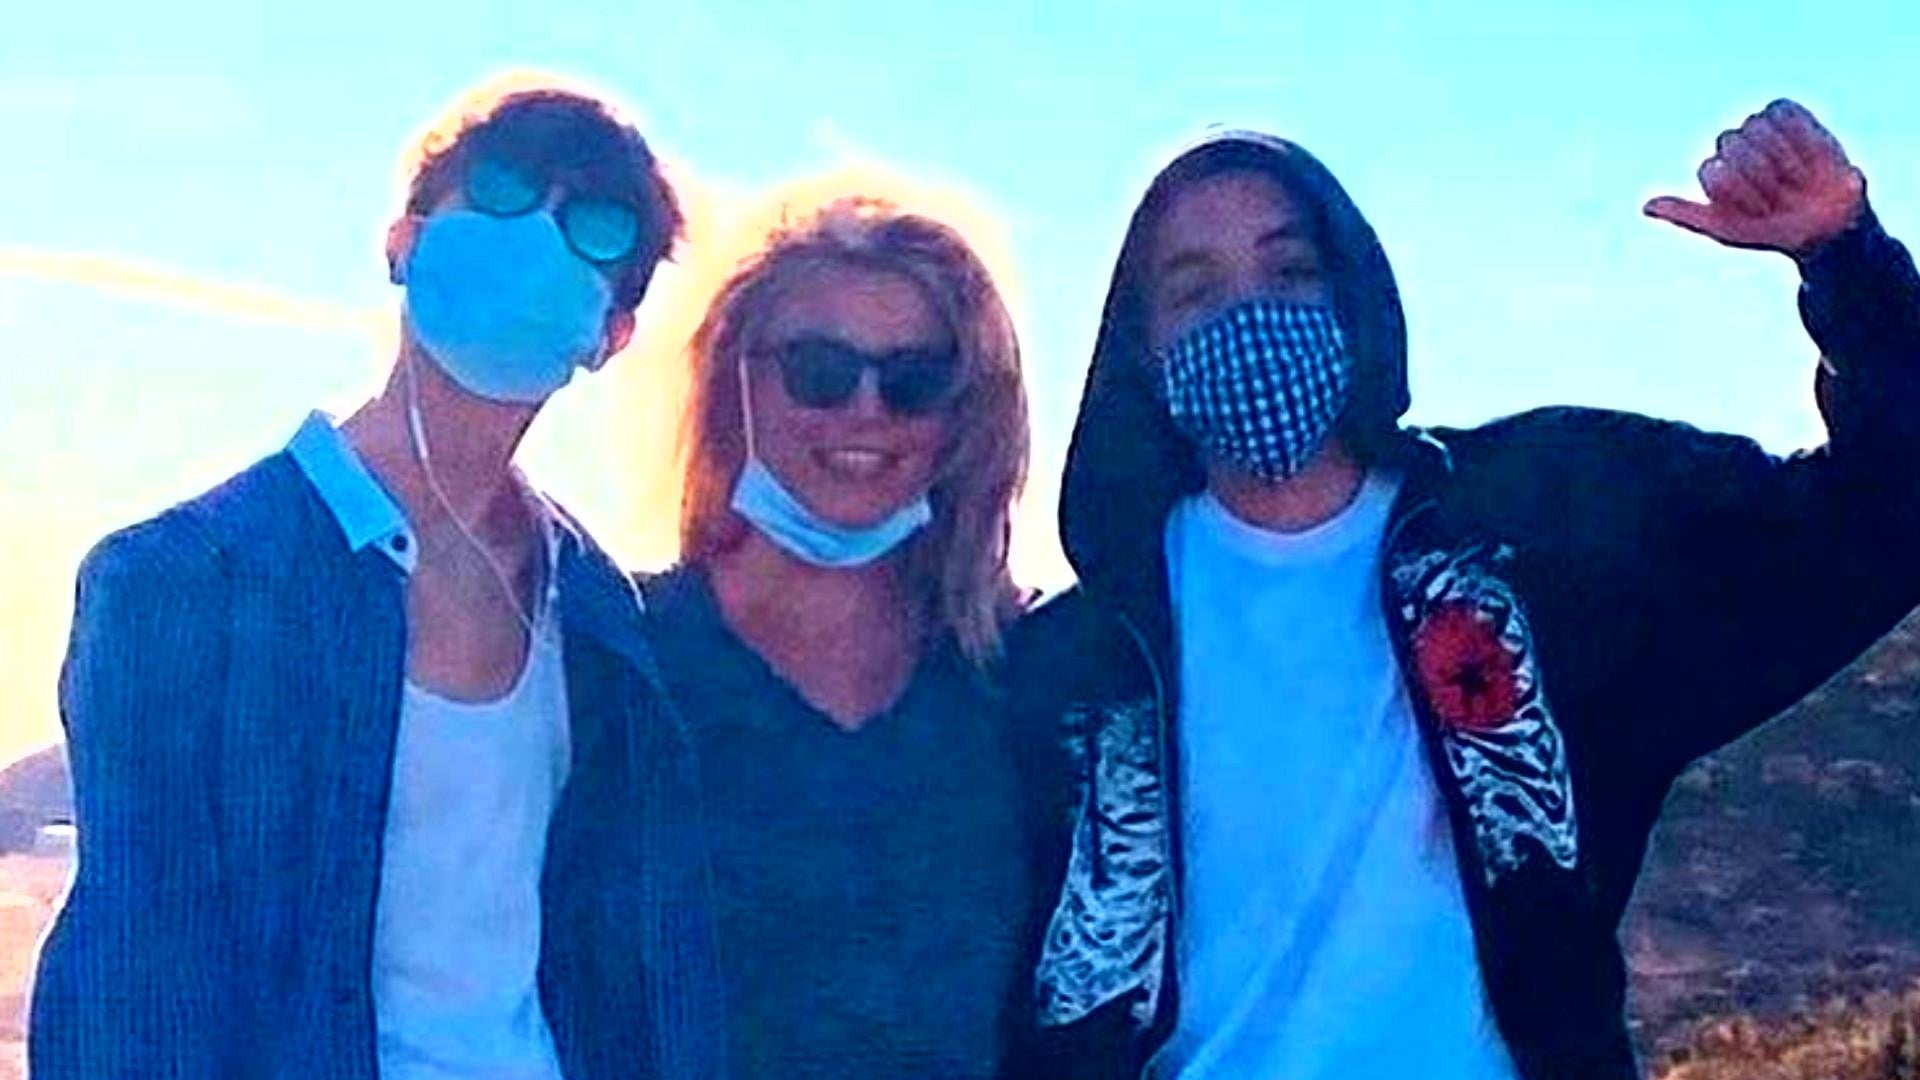 britney-spears-insider-says-the-highlight-of-her-week-is-spending-quality-time-with-her-teen-boys-details